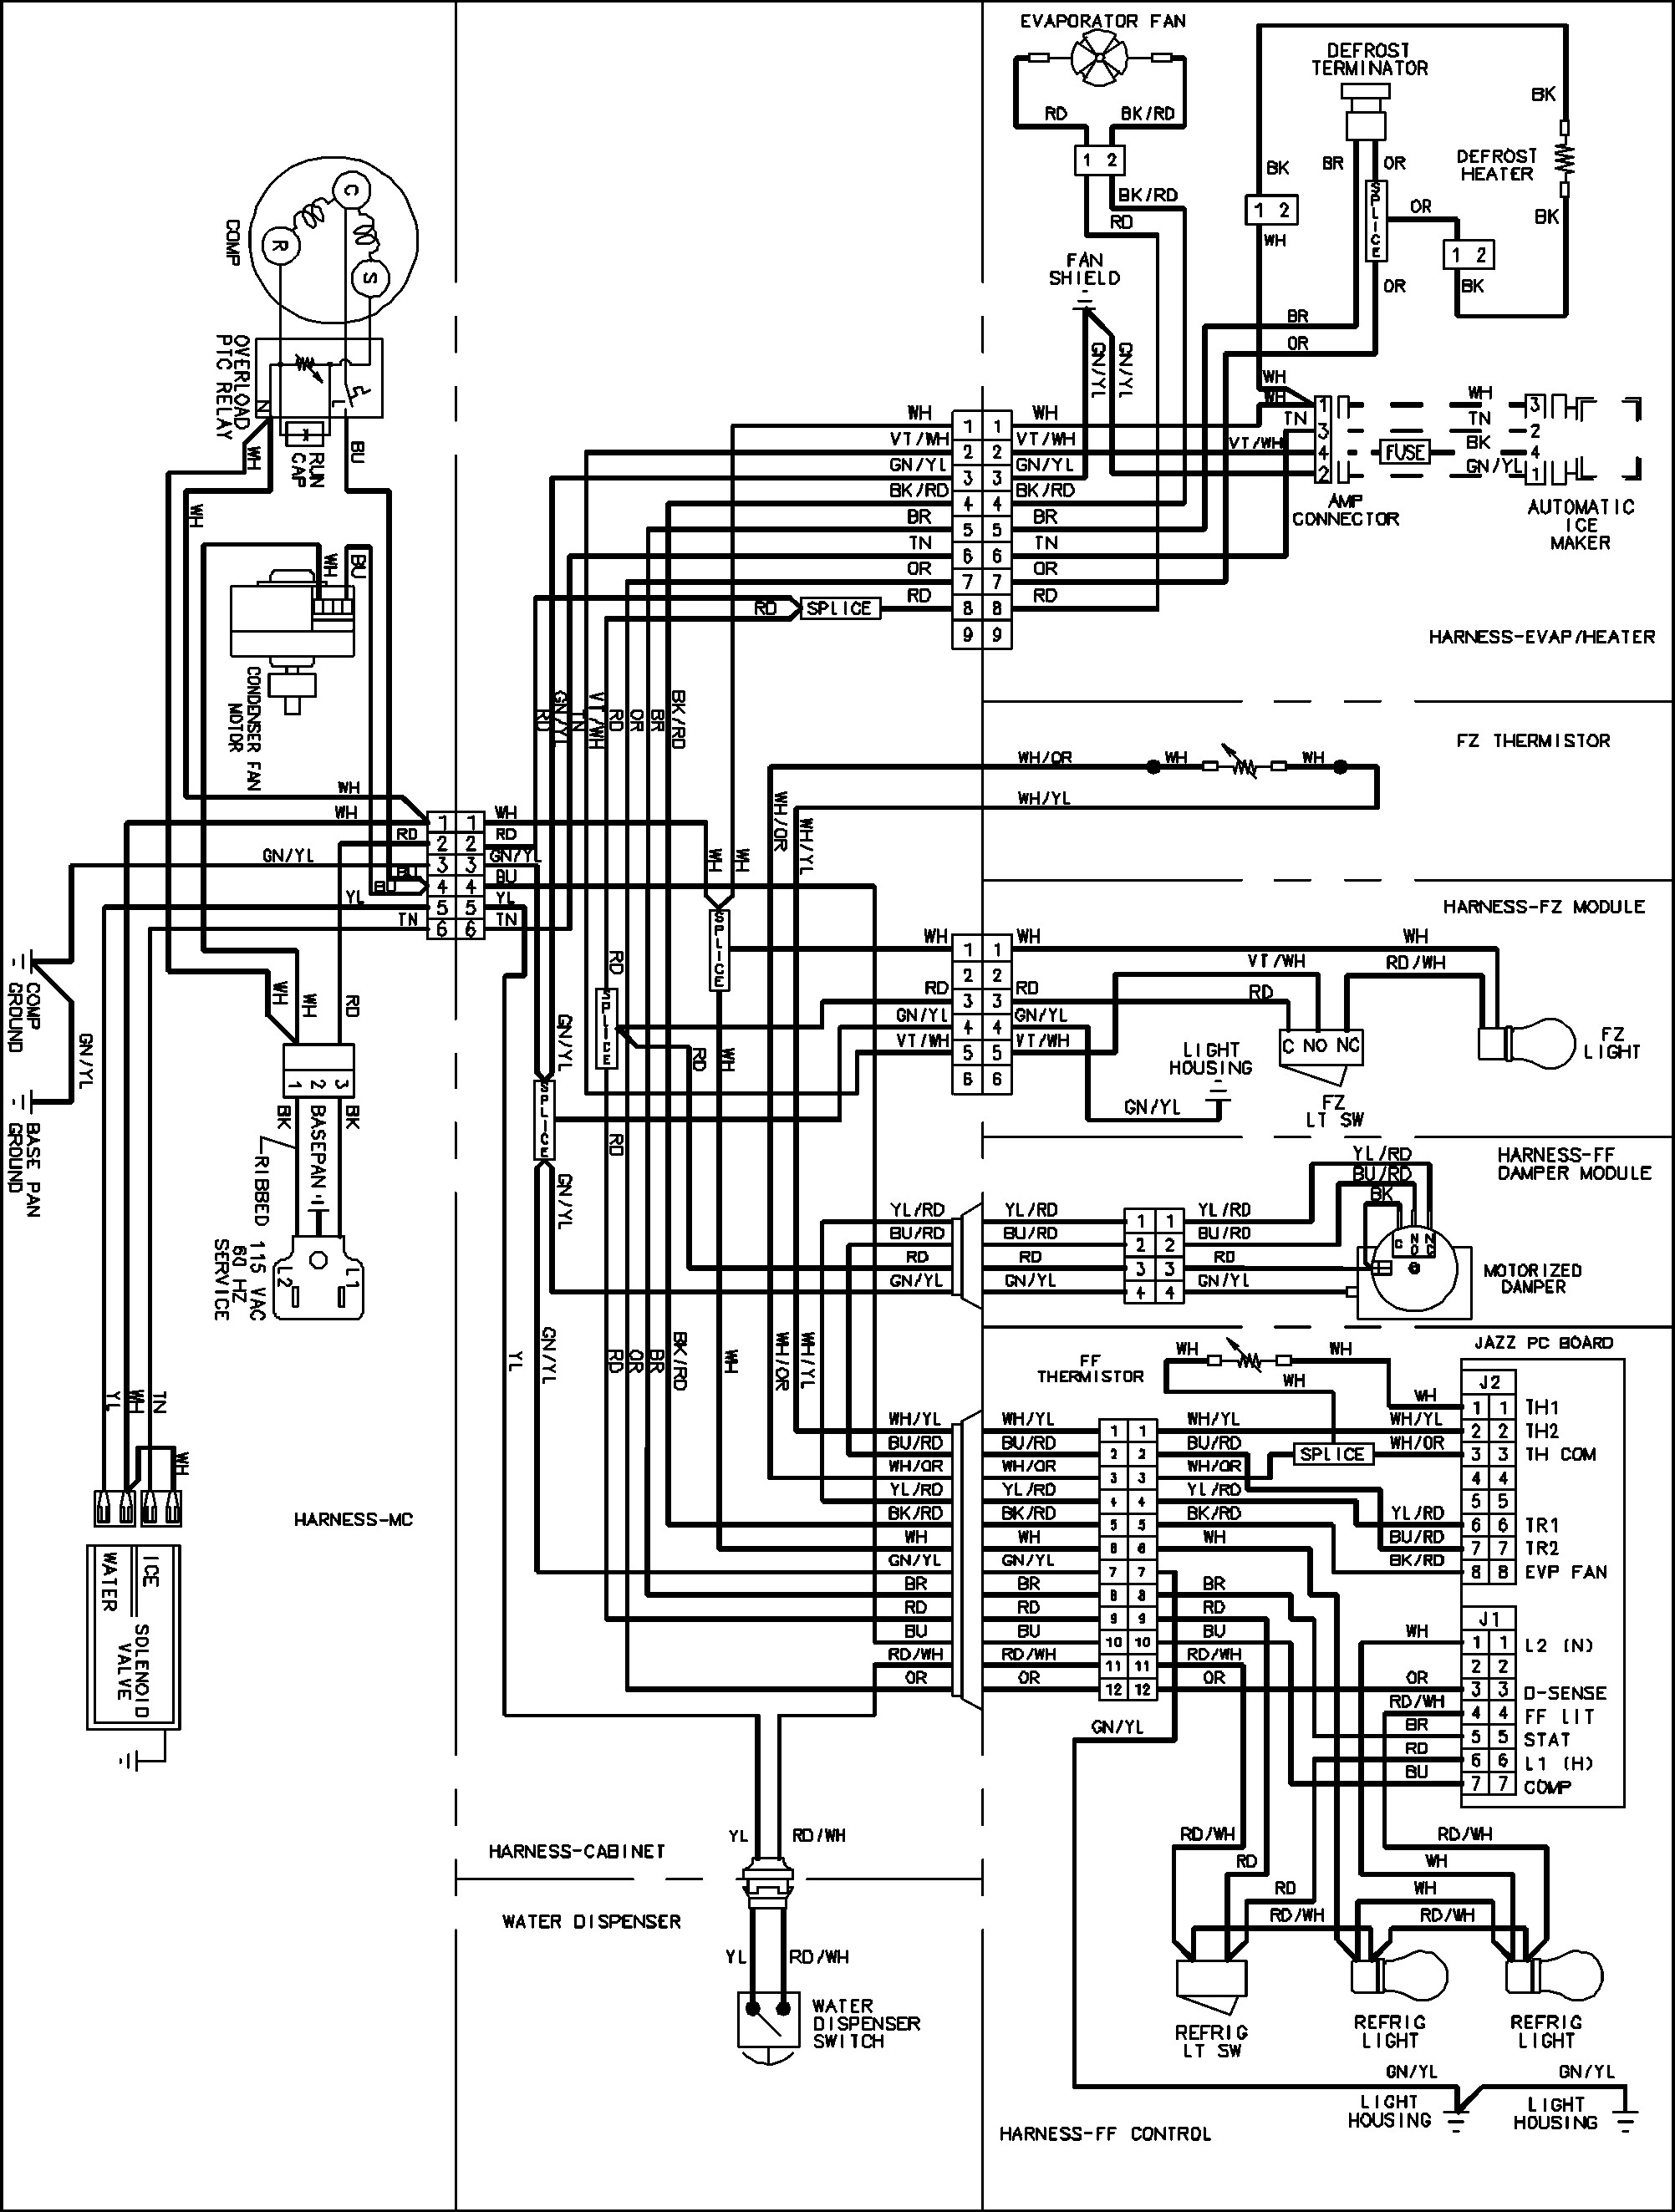 whirlpool fridge wiring diagram Collection-Wiring Diagram for Zanussi Fridge Freezer Best Whirlpool Fridge Wiring Diagram Beautiful Refrigerator Defrost Timer 4-o